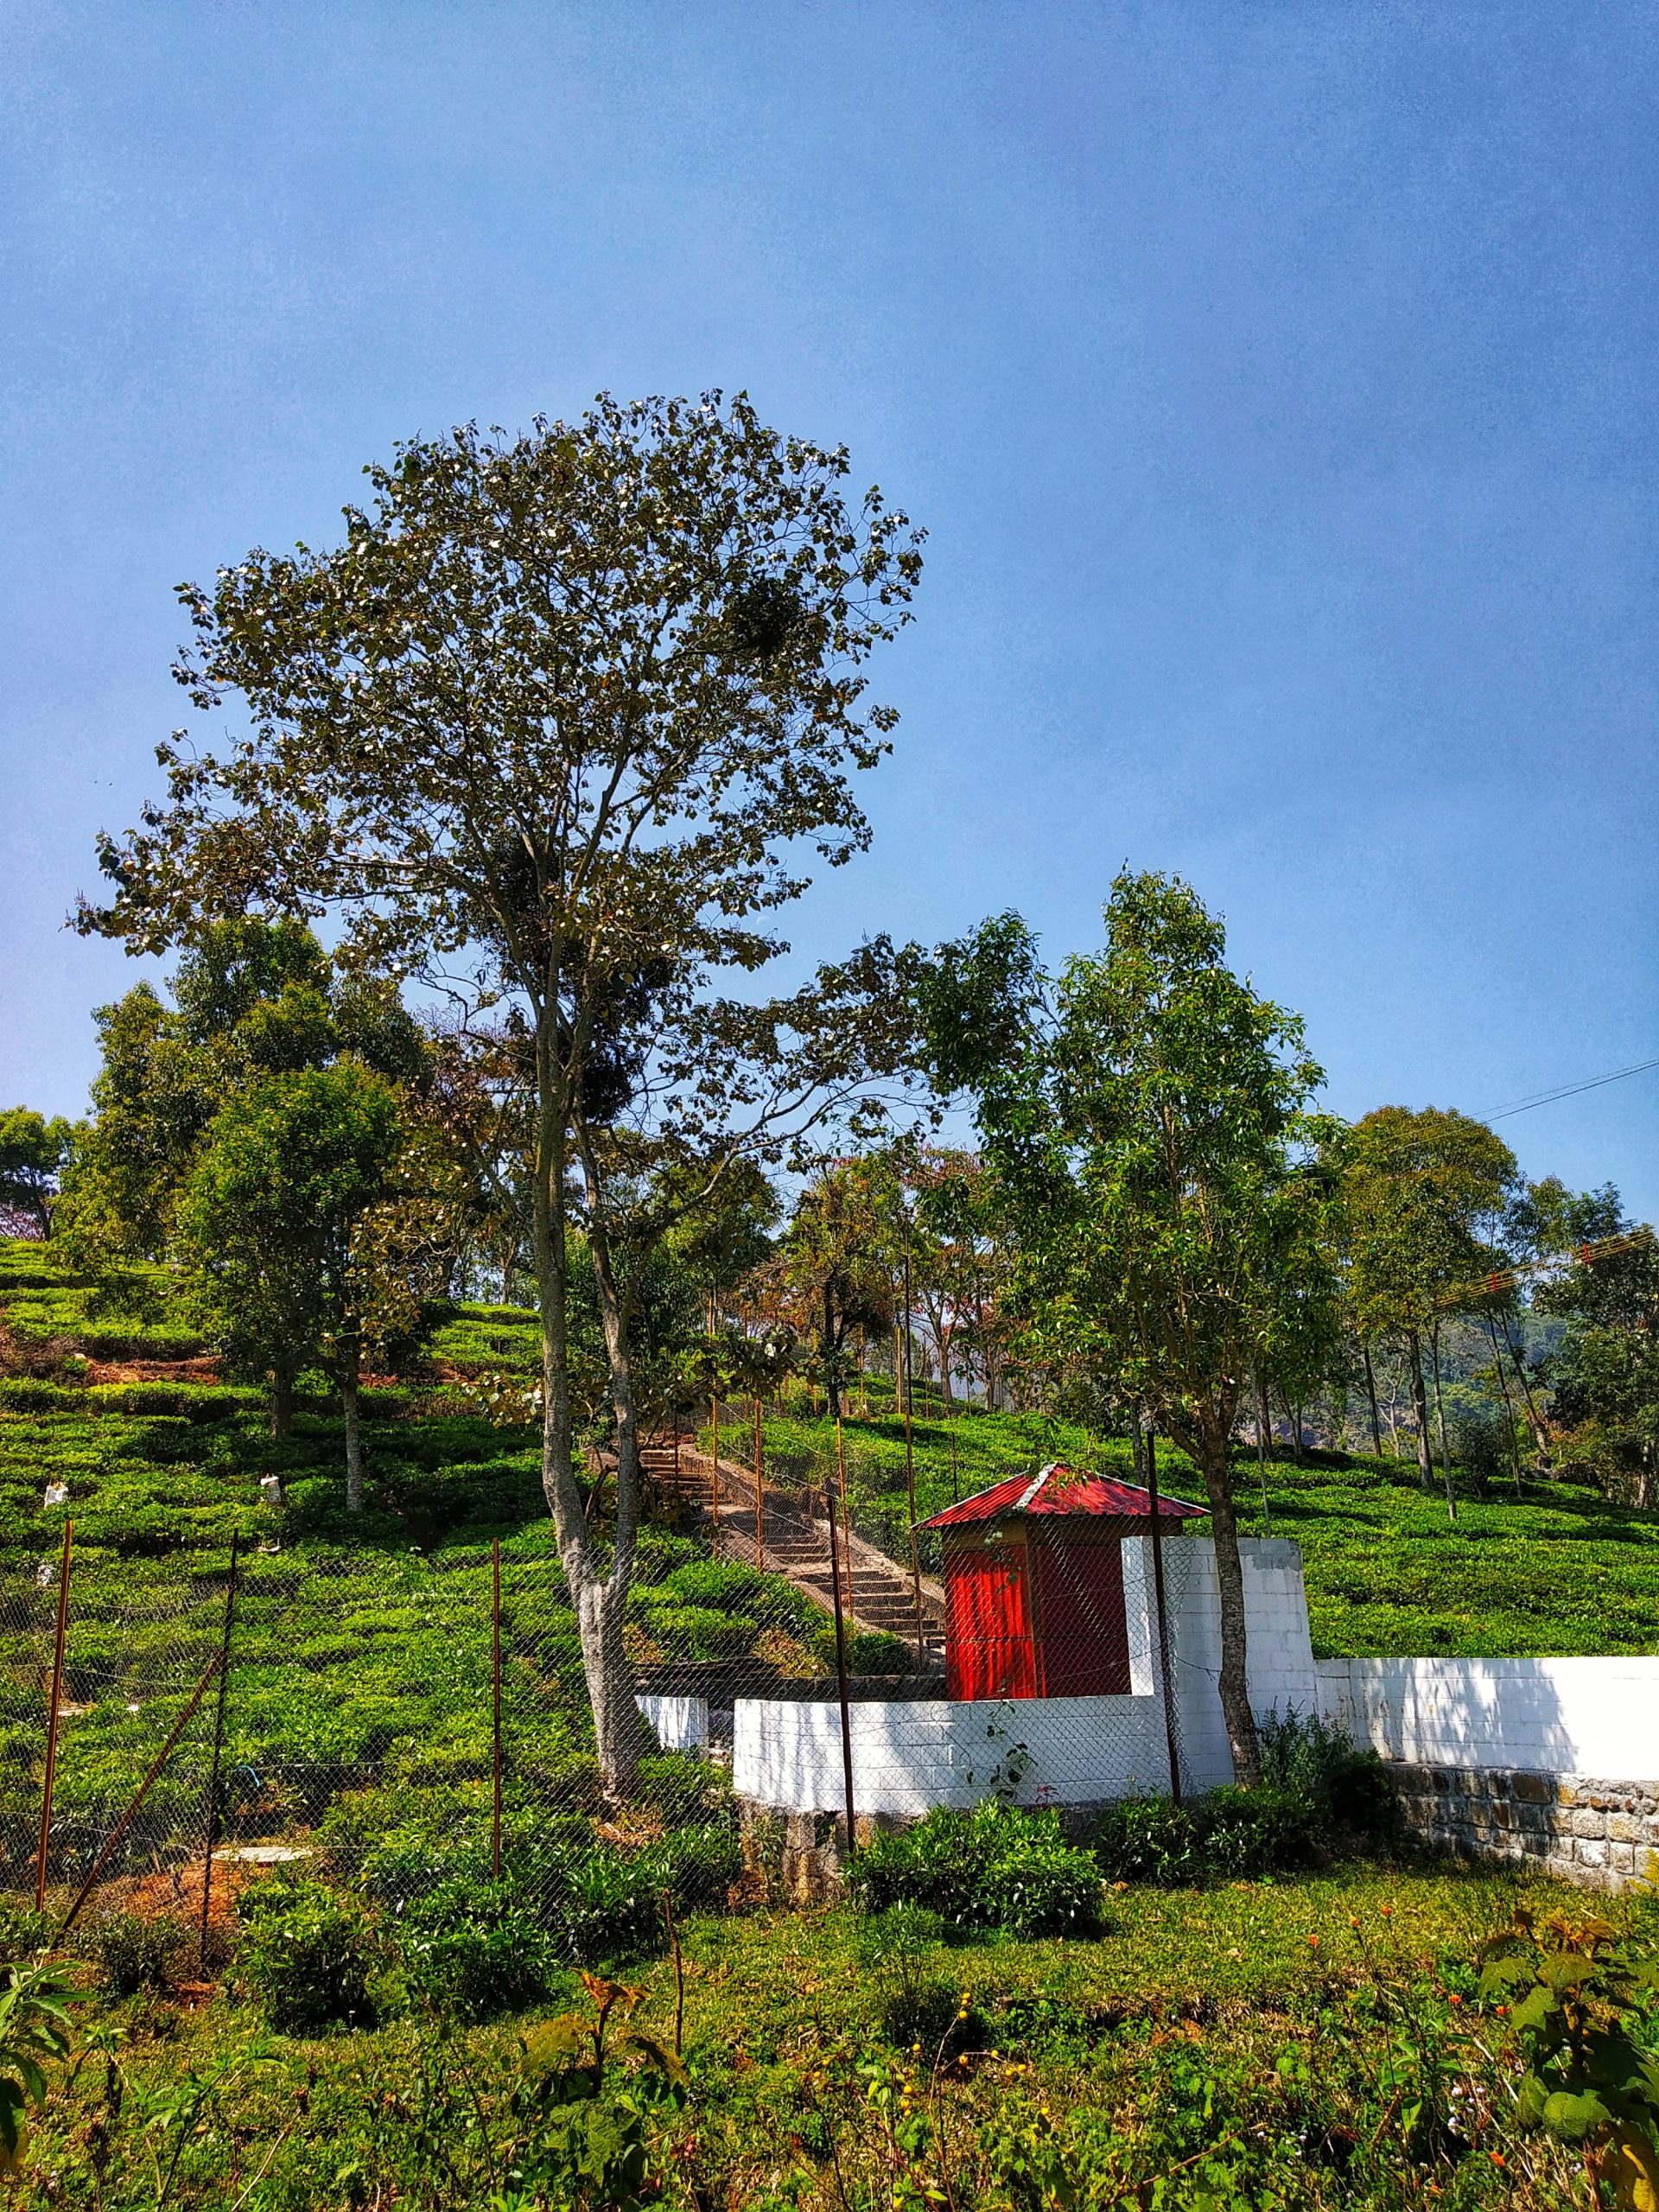 Tea farming at a hill station